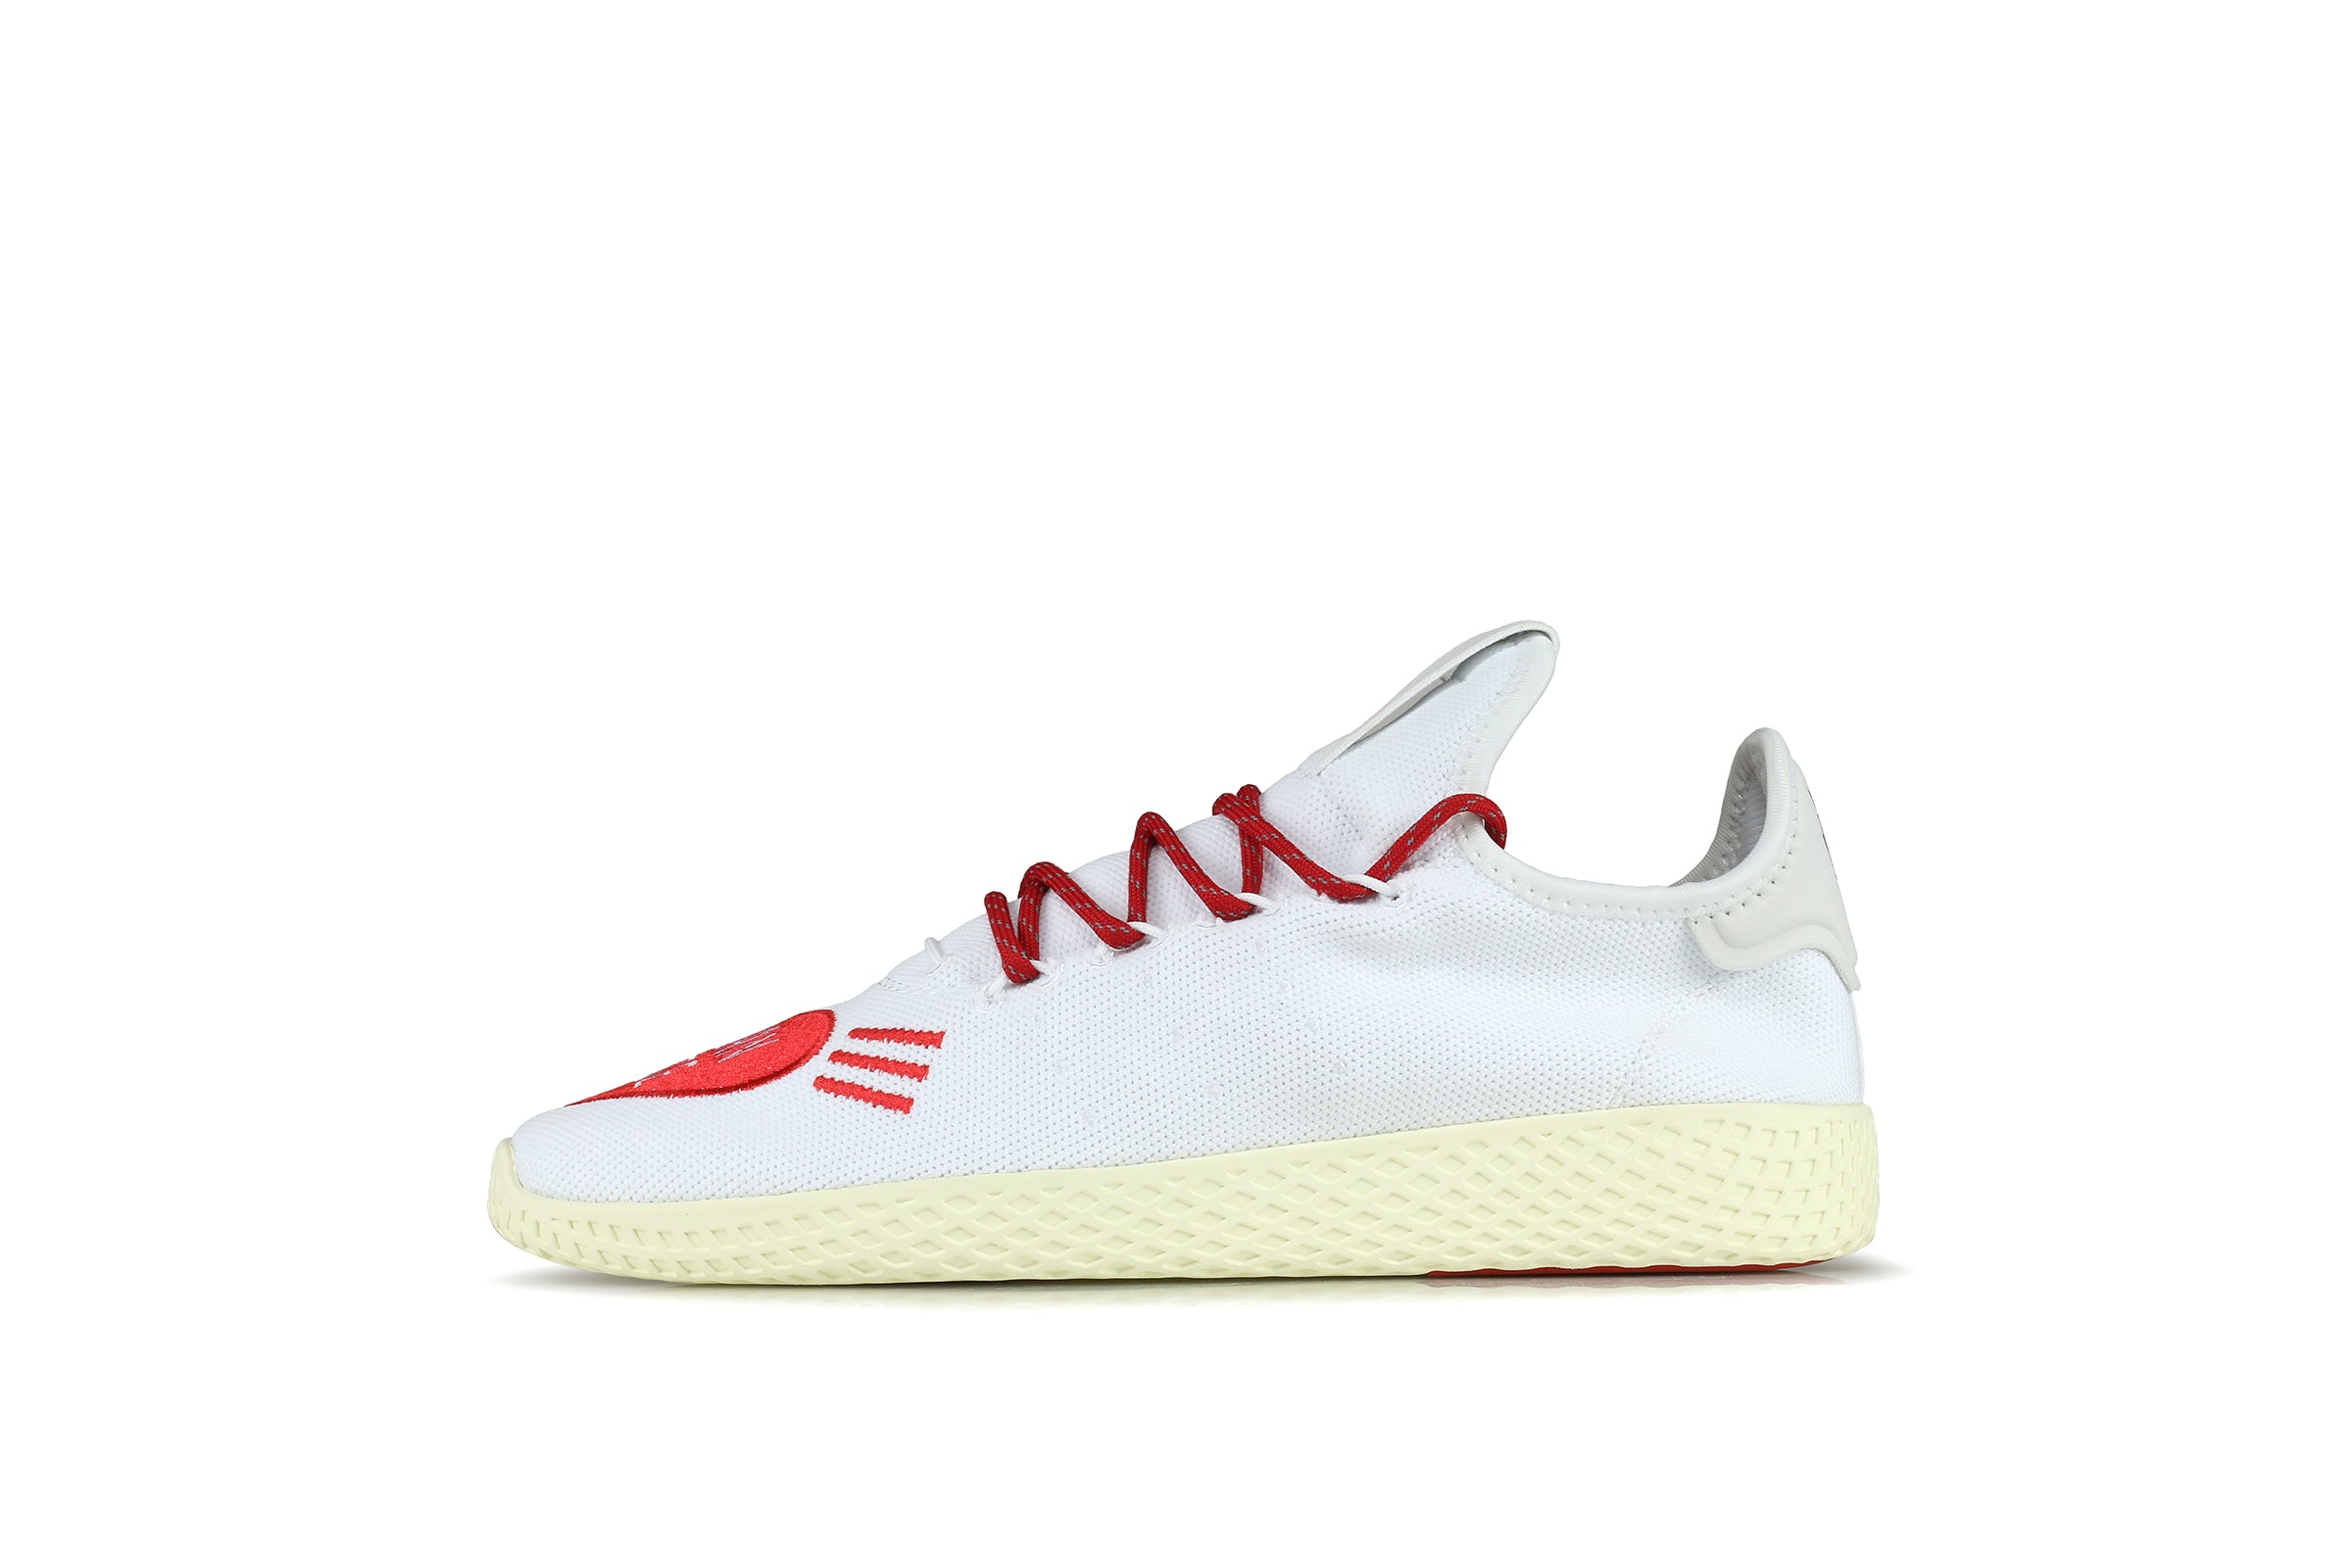 Adidas Tennis HU Human Made x Pharrell Williams